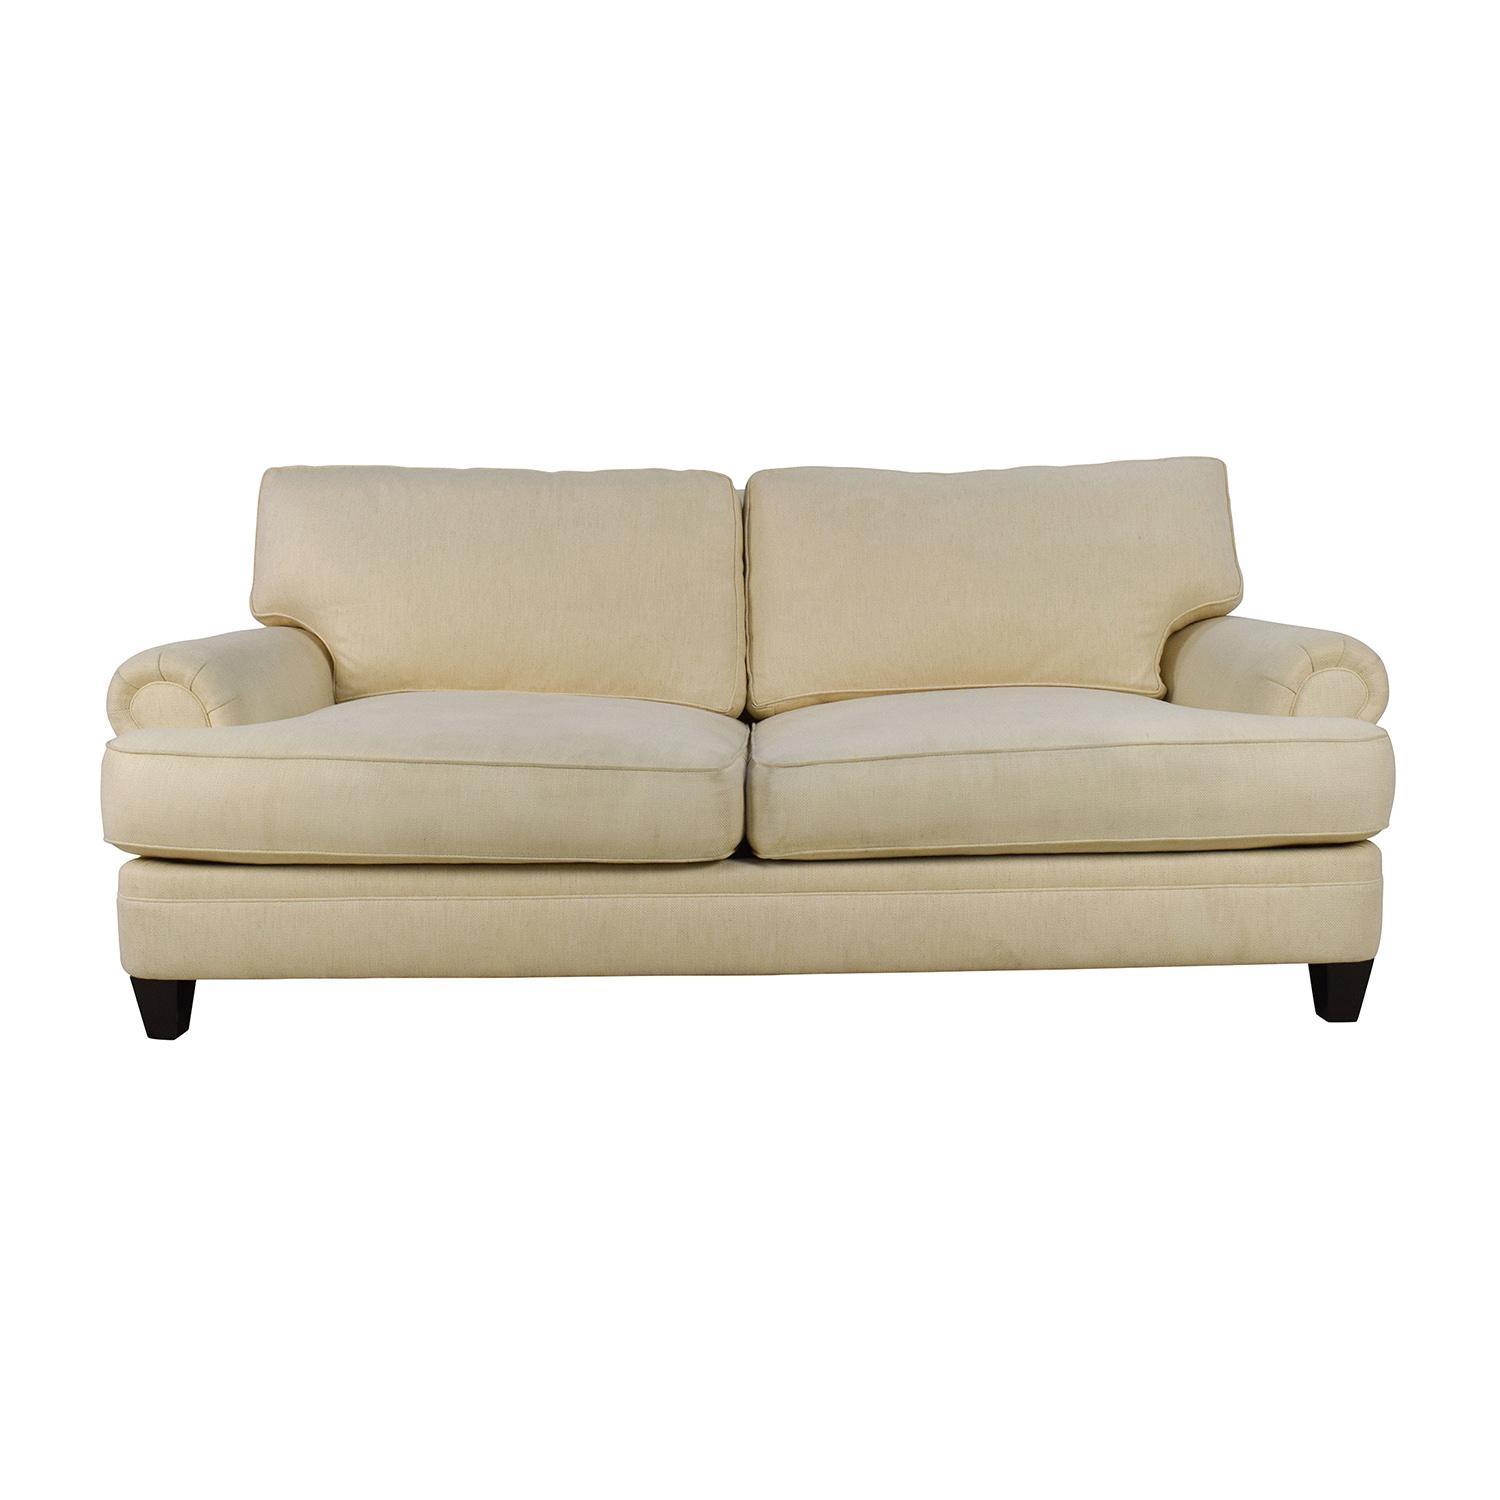 83% Off – Henredon Henredon Fireside Short Beige 3 Seater Sofa / Sofas Pertaining To Short Sofas (Photo 1 of 20)